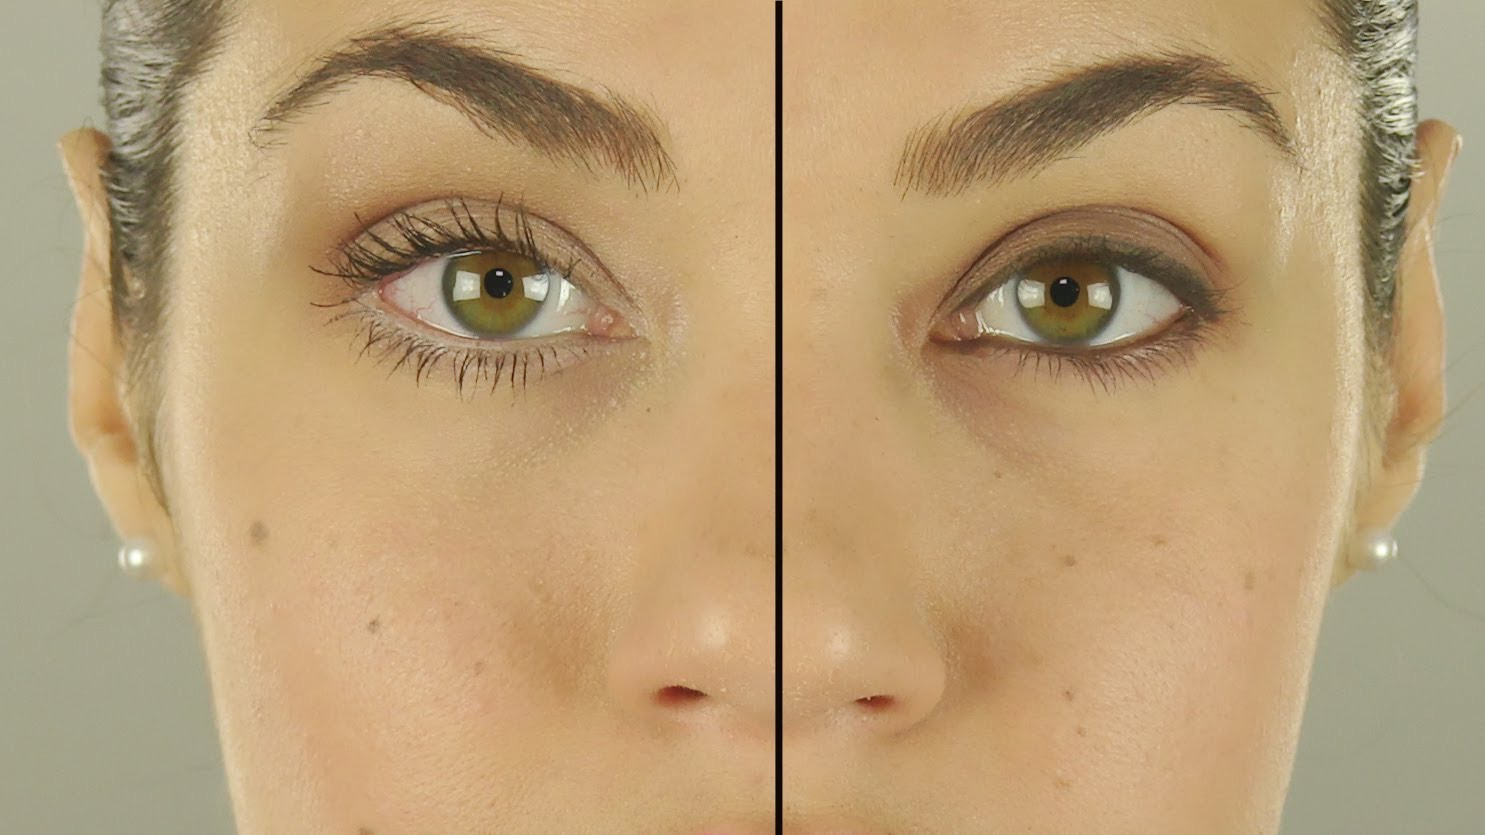 How To Make Your Eyes Light Brown Naturally